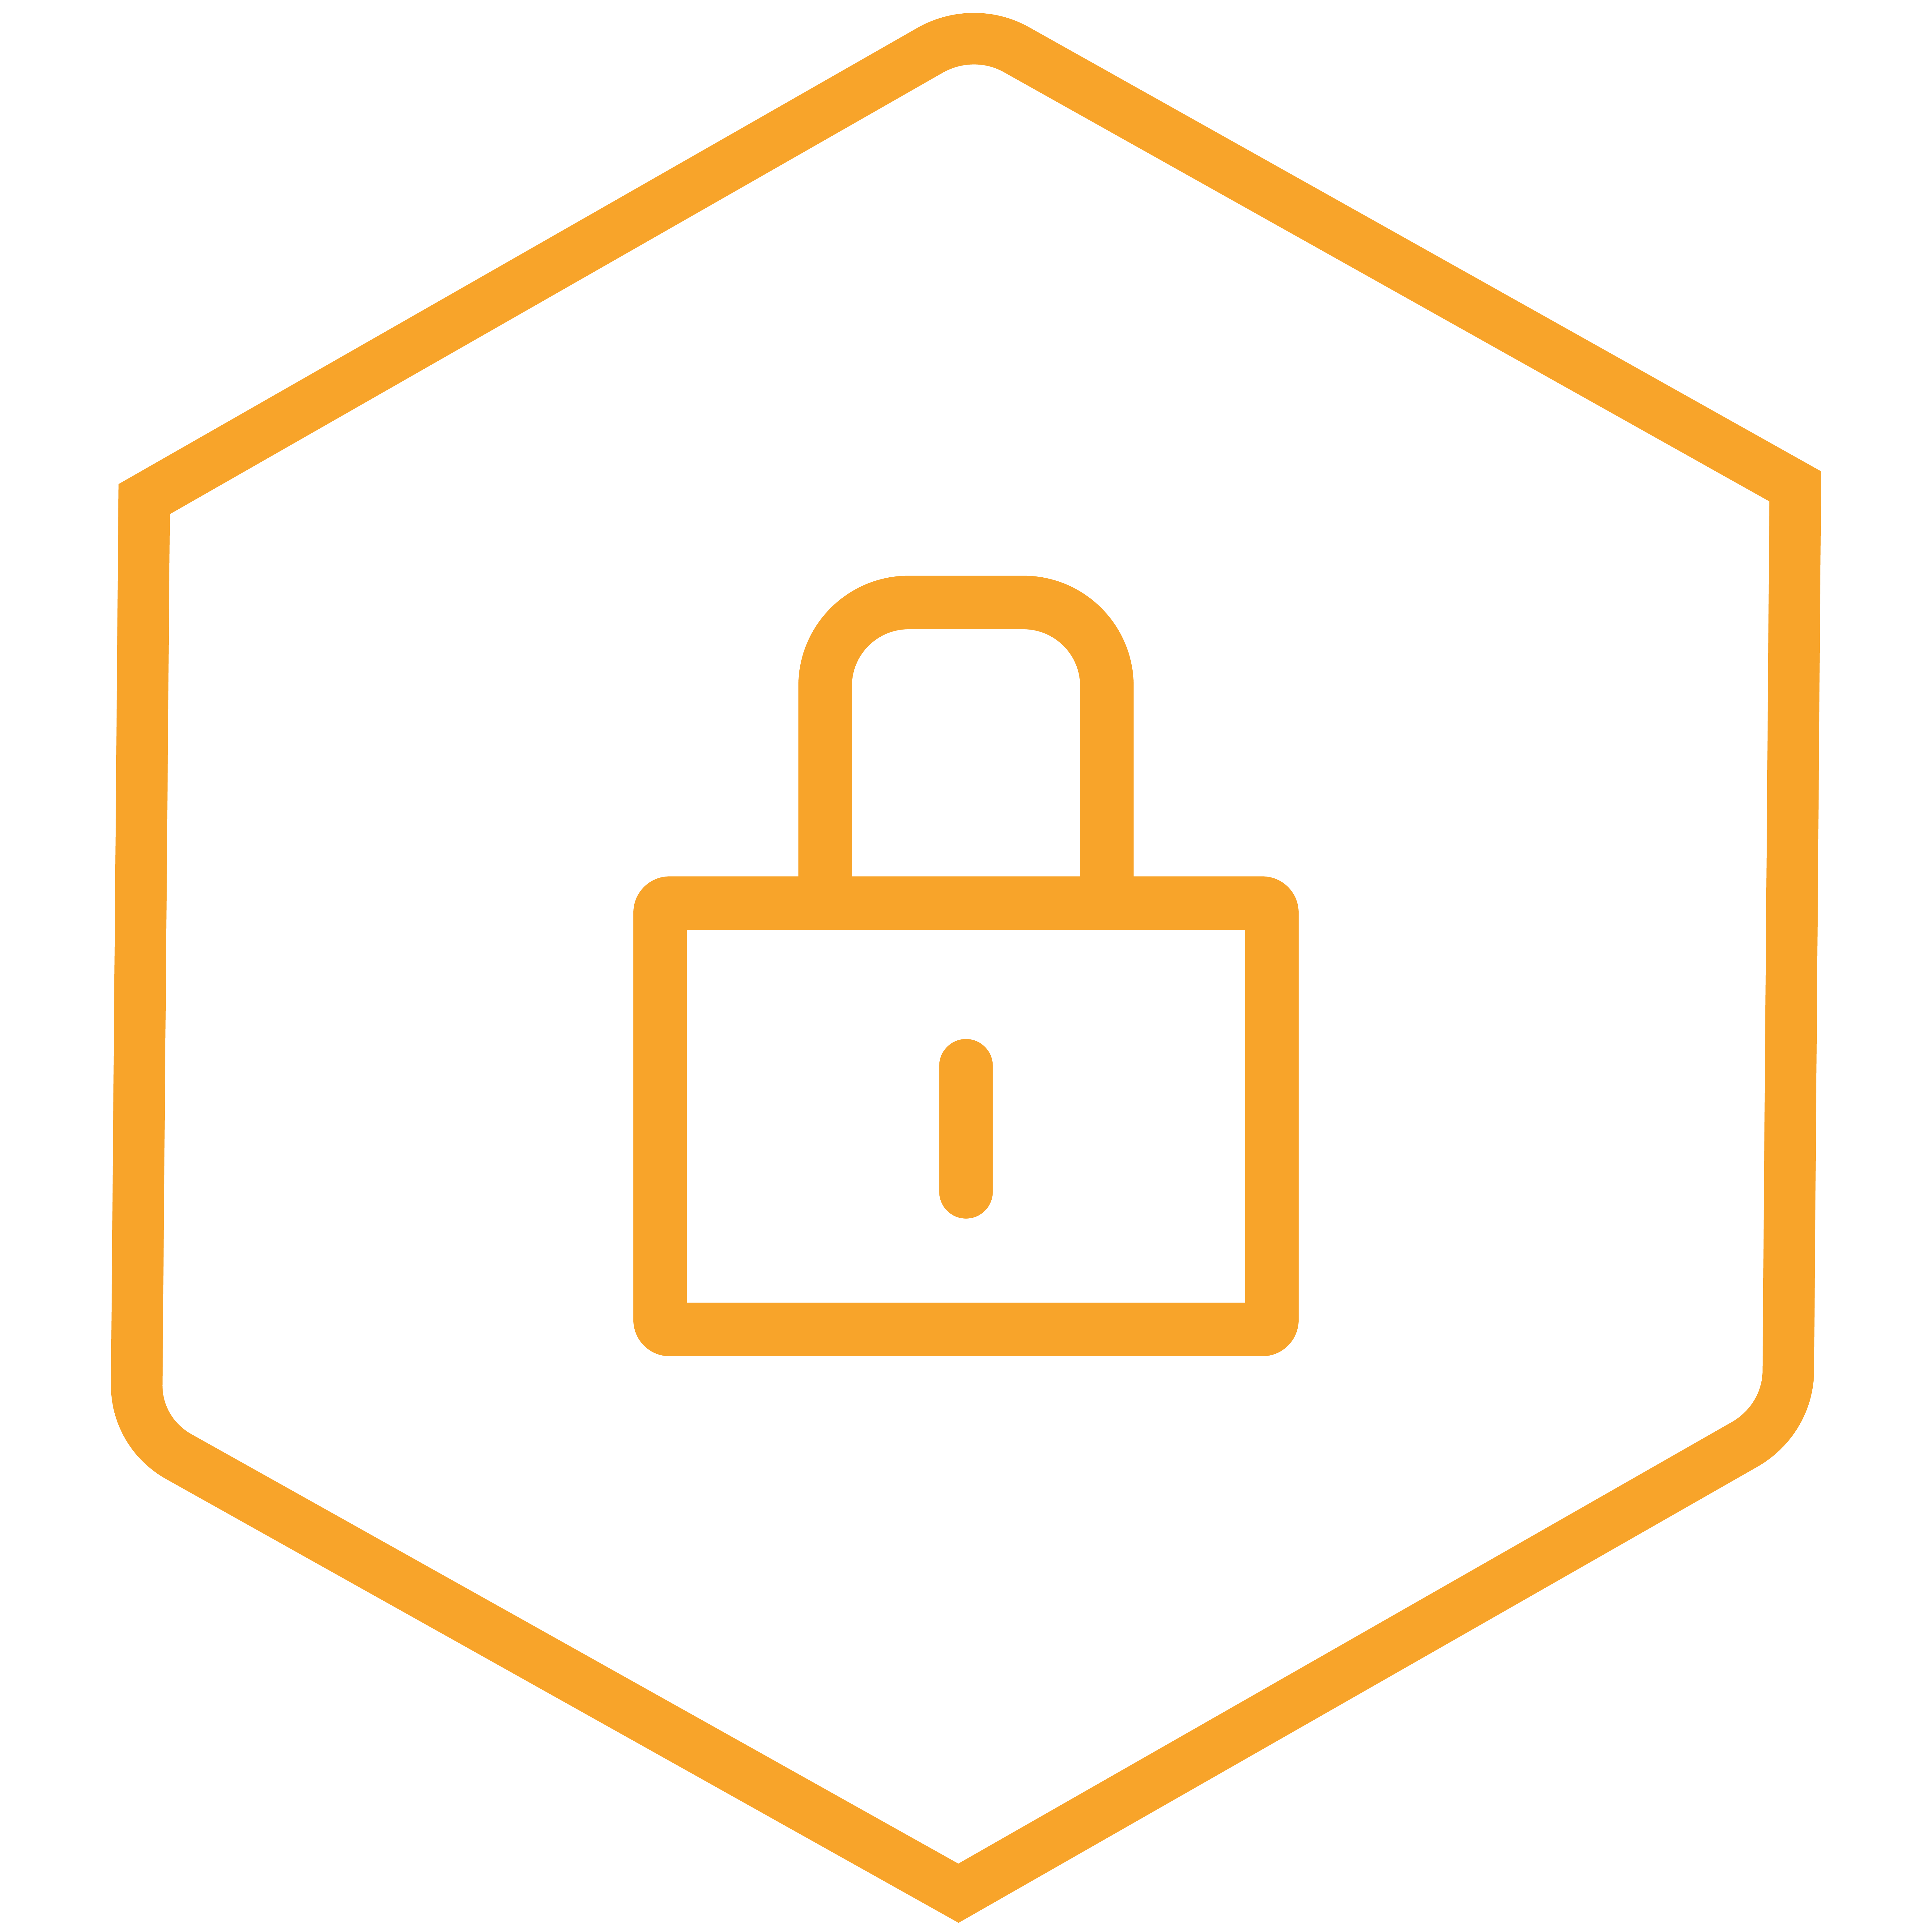 icons_hexagon2_escapegame-orange